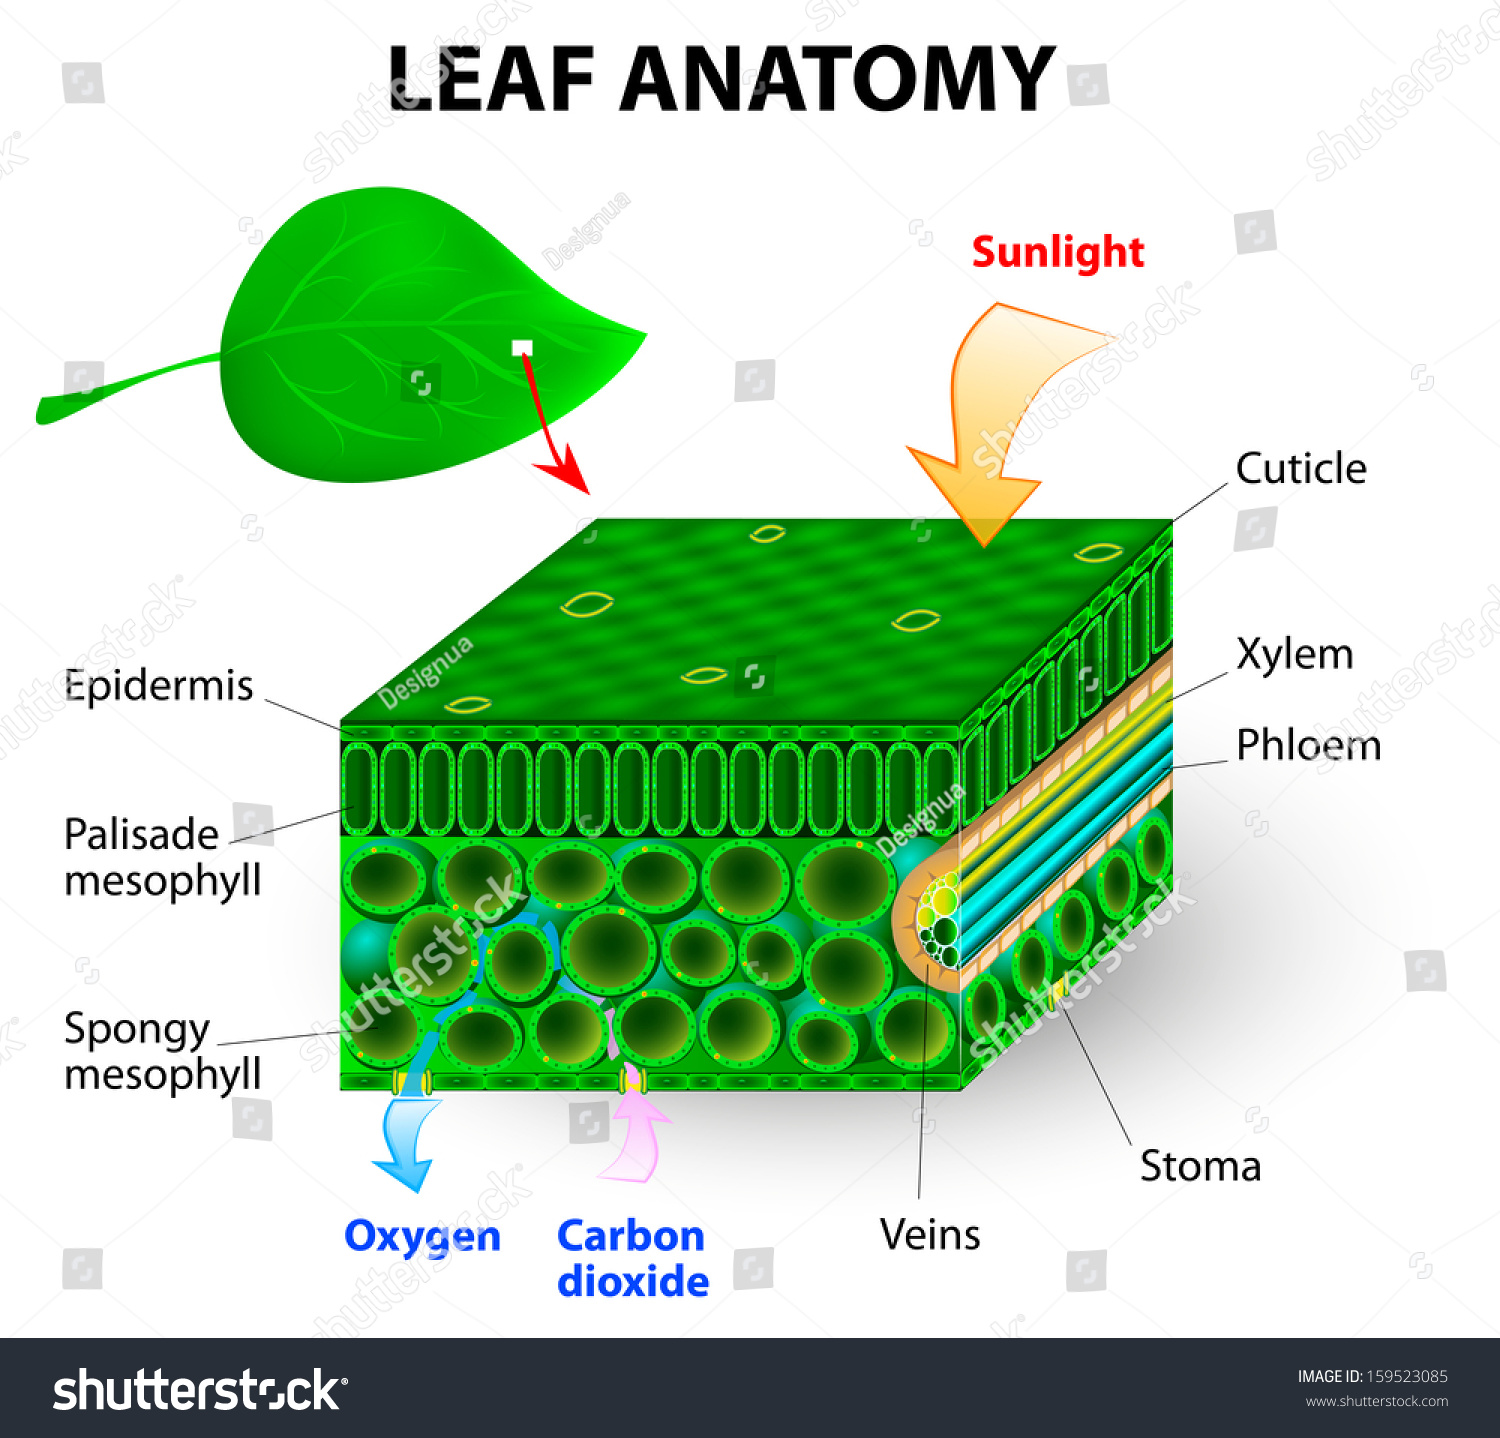 mesophyll cell diagram strong winds leaf anatomy photosynthesis chlorophyll molecule